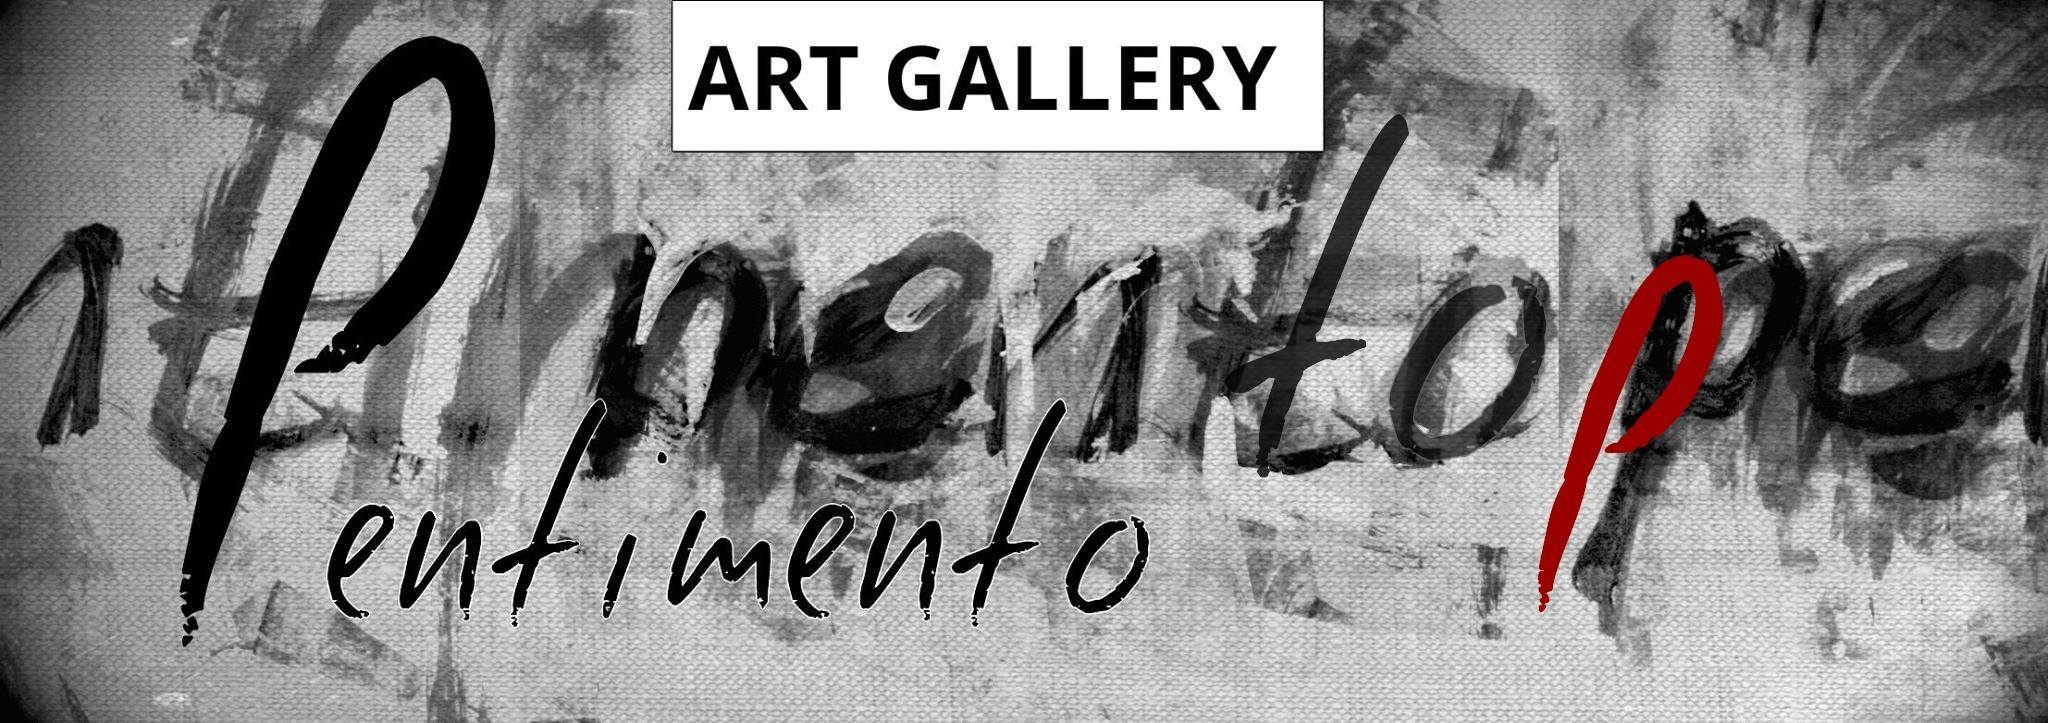 Pentimento Art Gallery